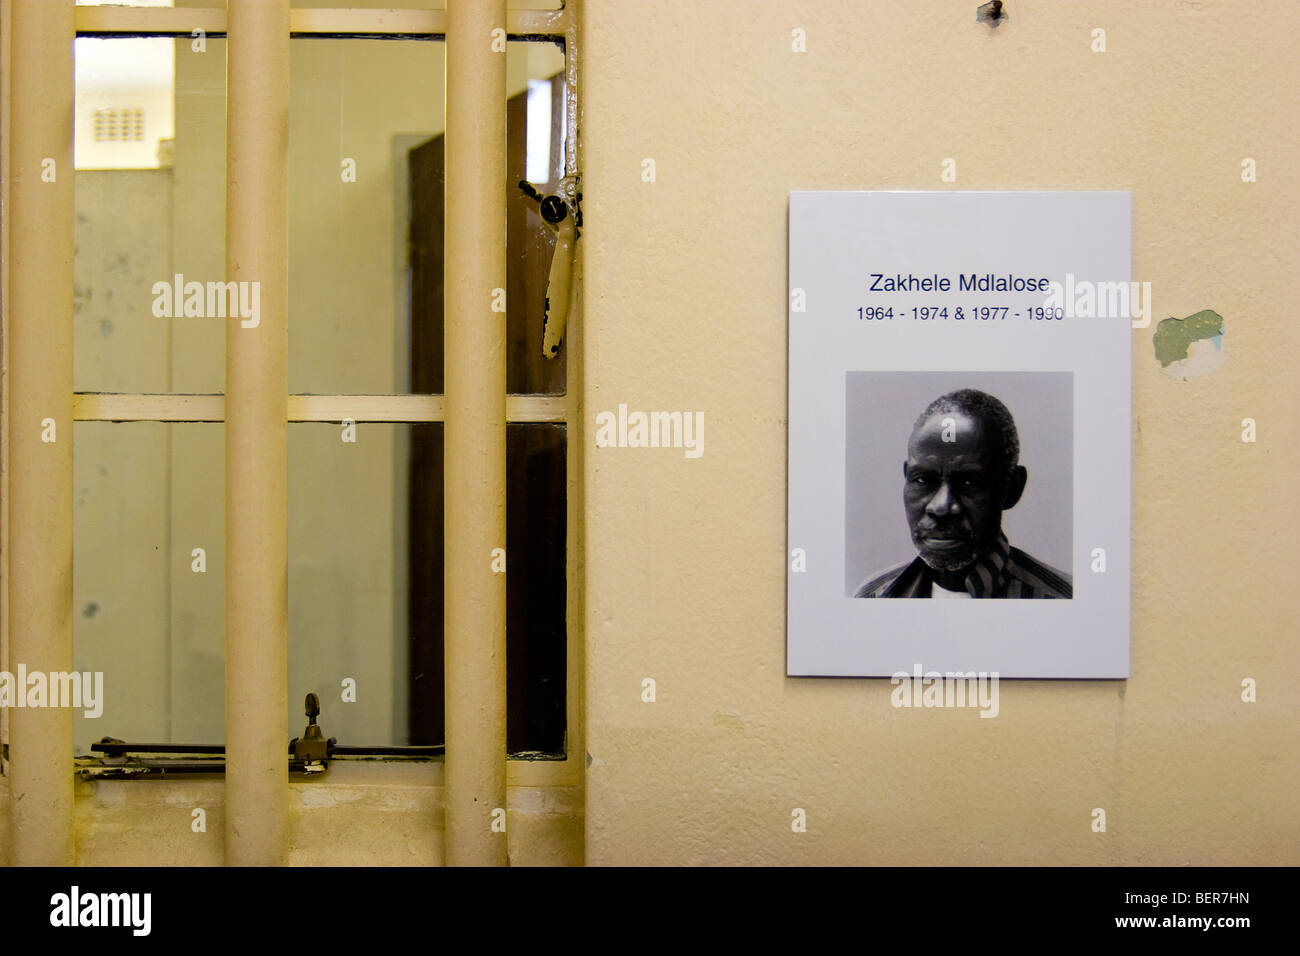 Prison cell, Robben Island Museum, Cape Town, South Africa - Stock Image